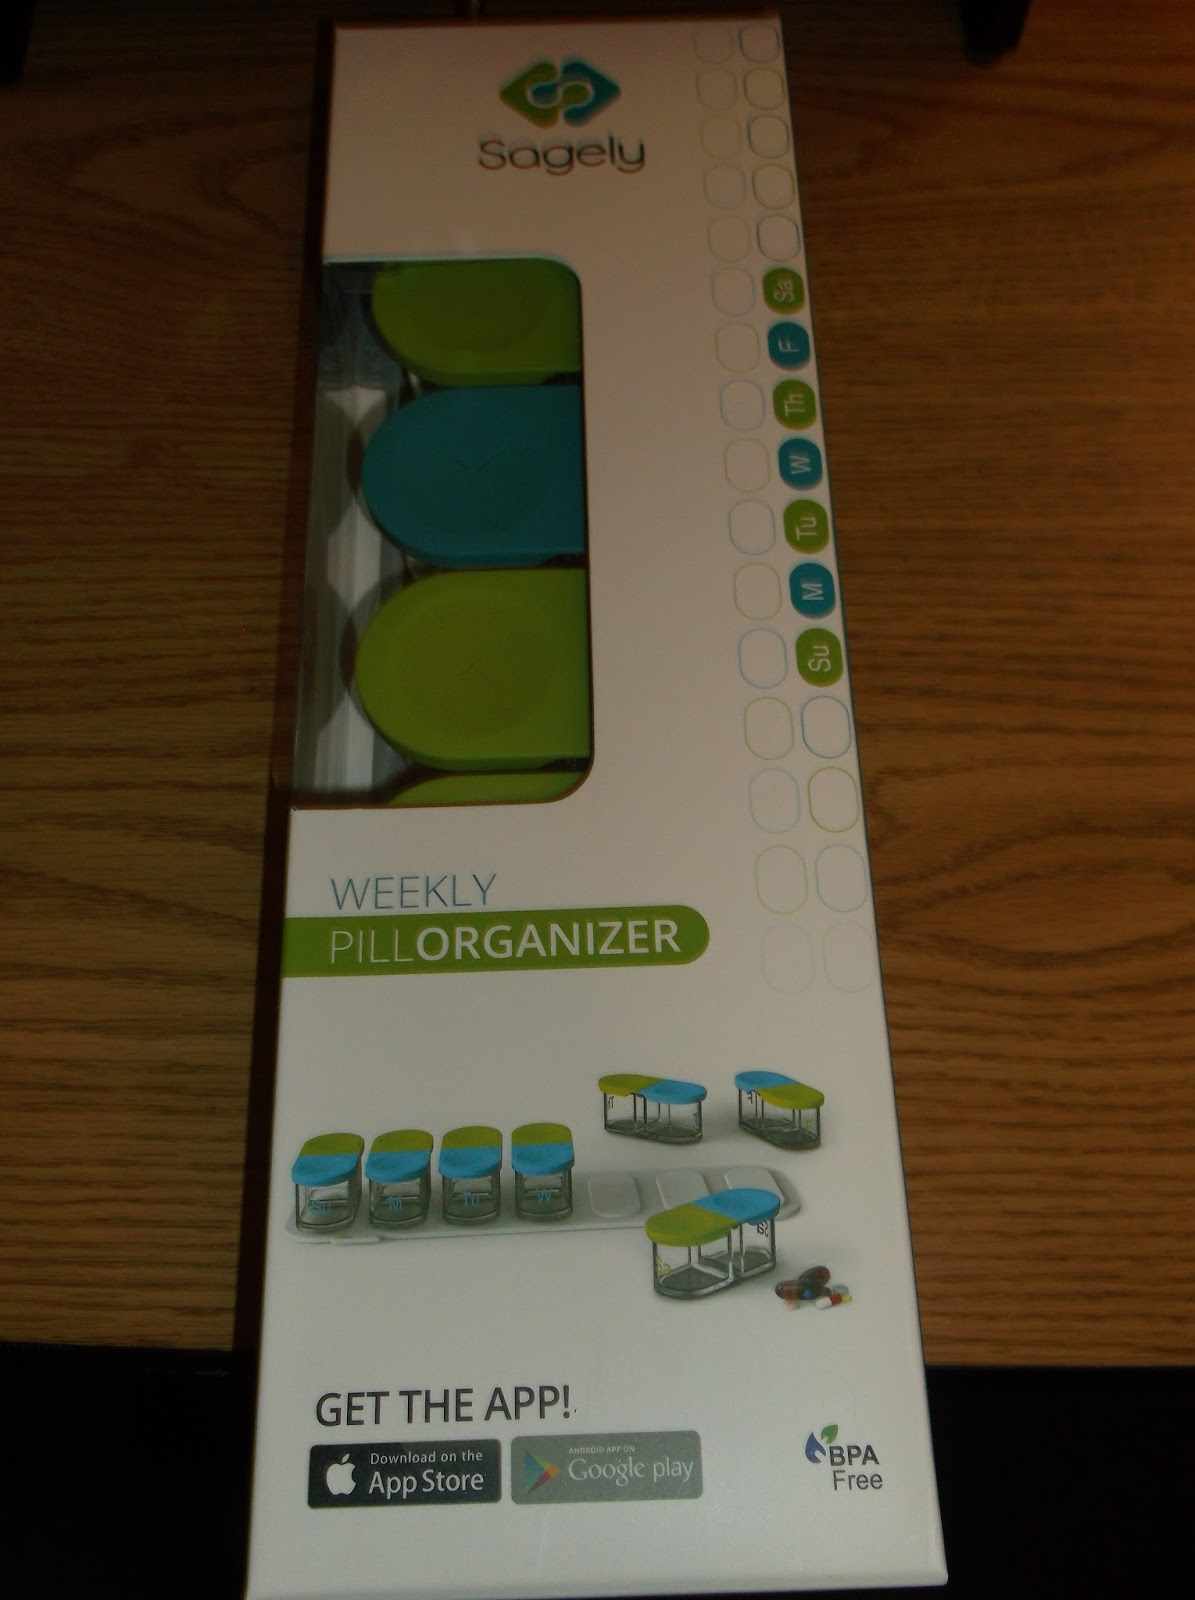 Missys product reviews sagely smart pill organizer i know you know someone who forgets to take their pills daily if not yourself a family member sagely smart weekly pill organizer solves the challenges solutioingenieria Gallery